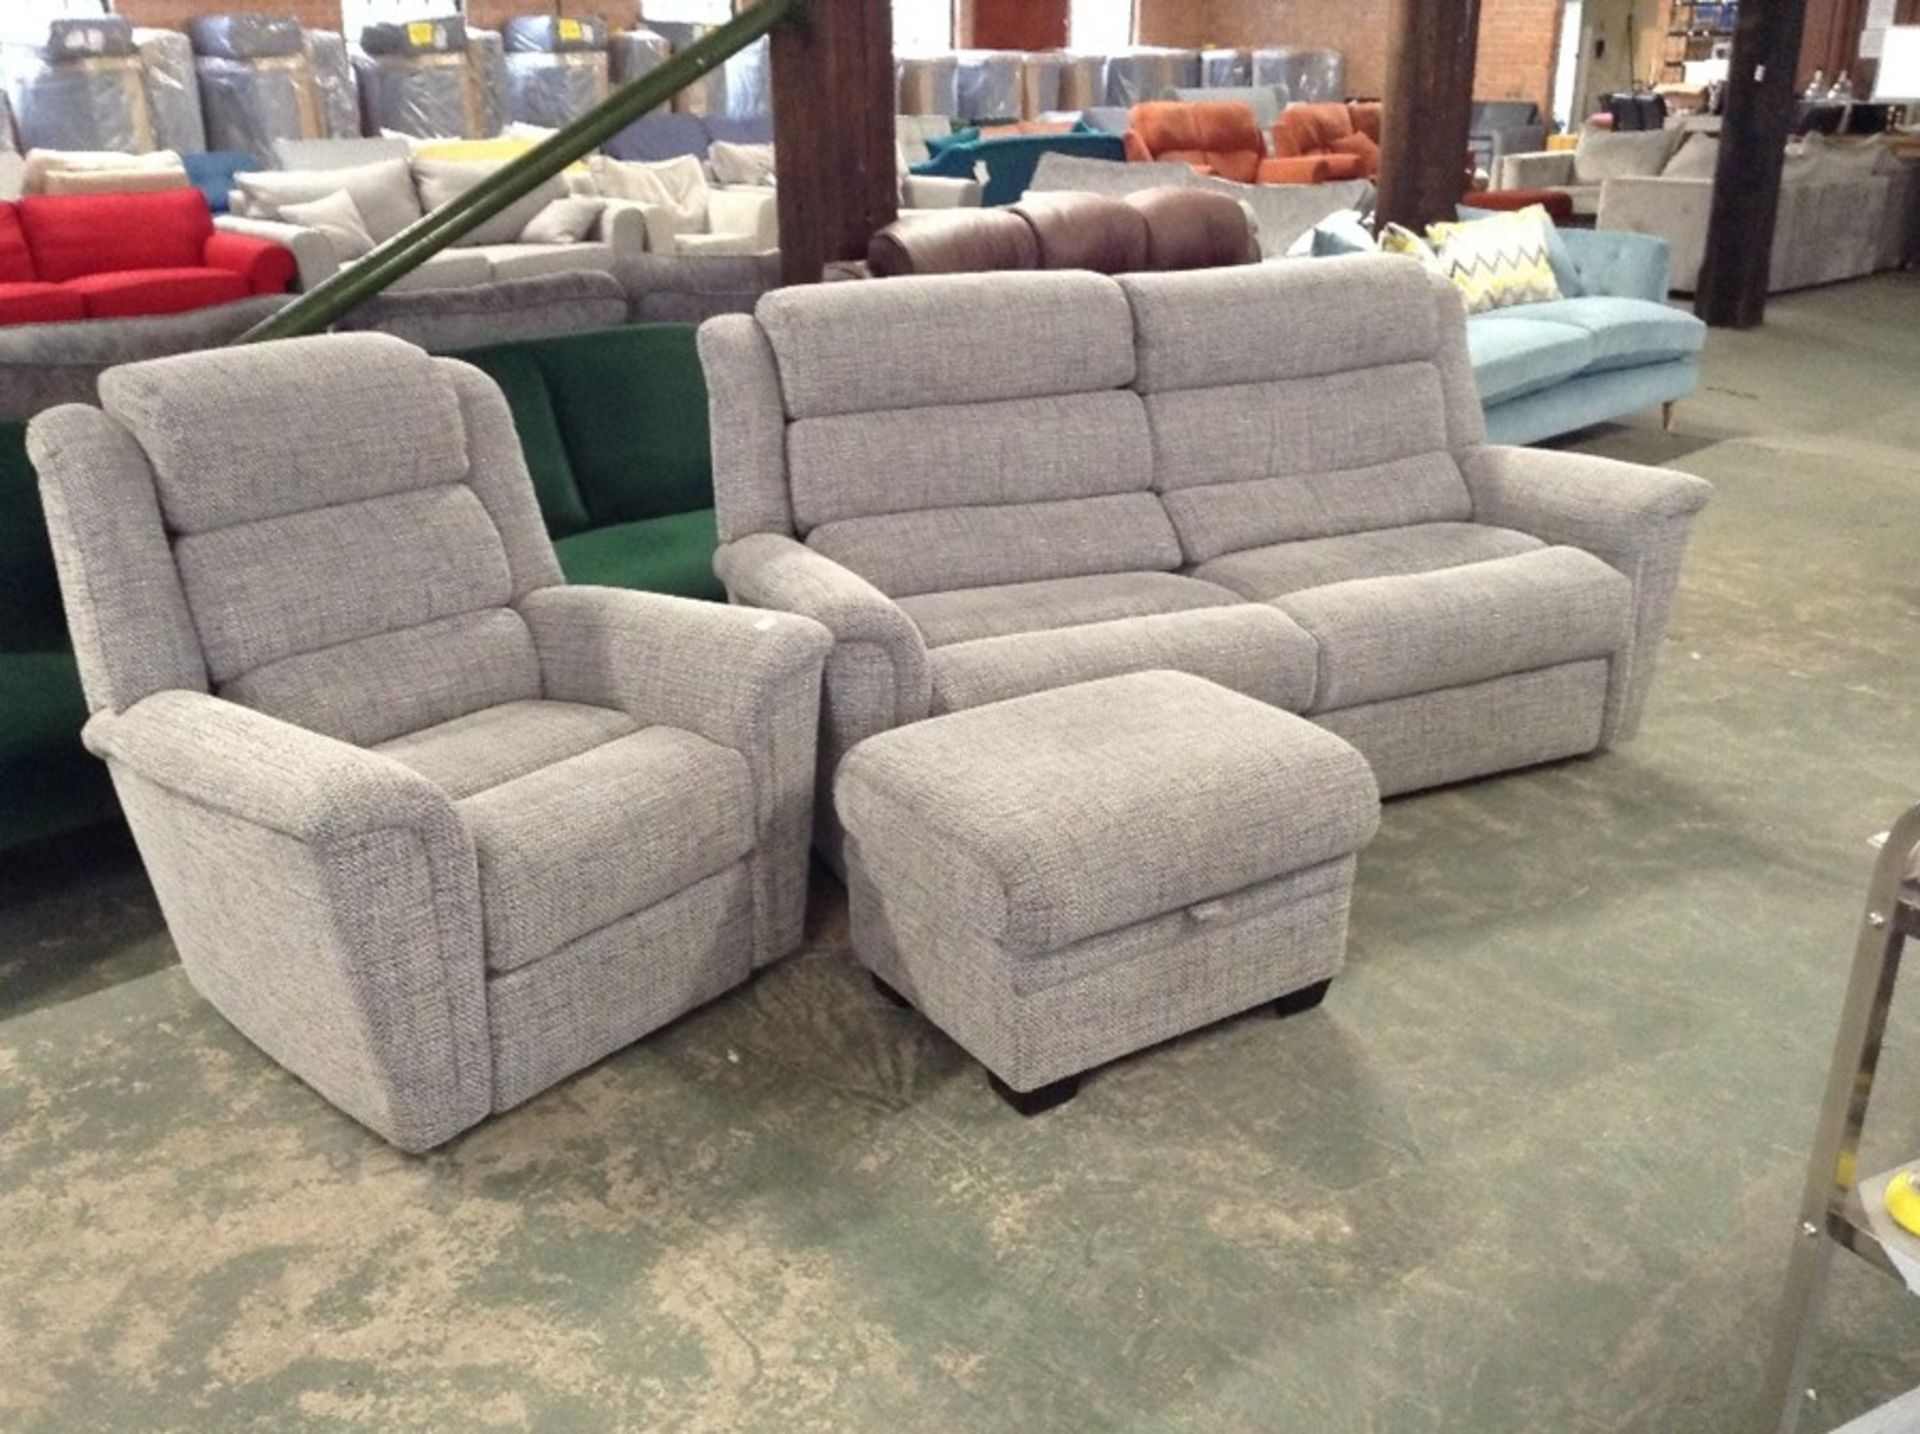 GREY PATTERNED HIGH BACK 3 SEATER SOFA CHAIR AND F - Image 2 of 2